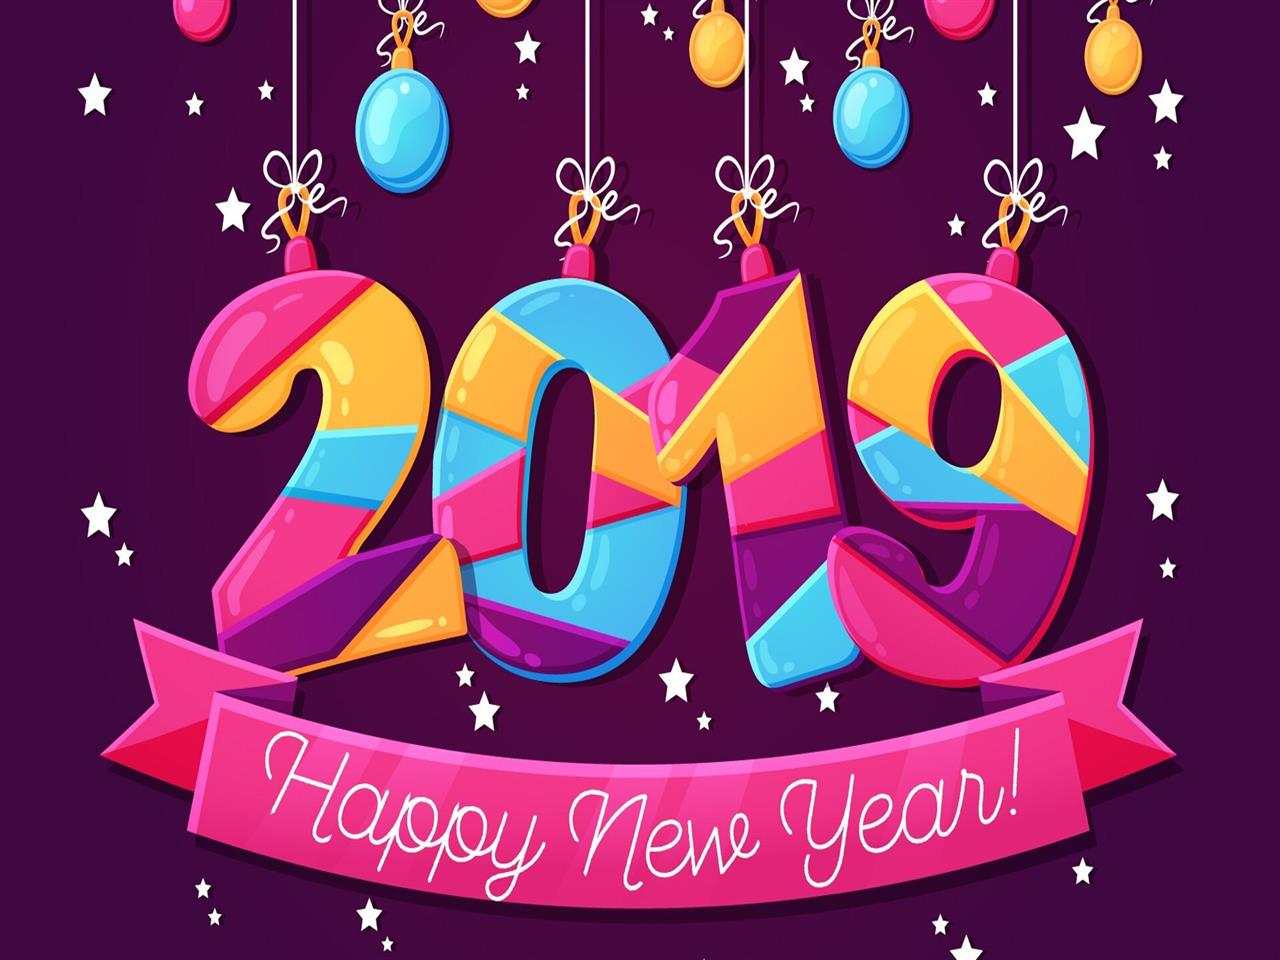 1280x960 2019 Happy New Year HD Pink Image